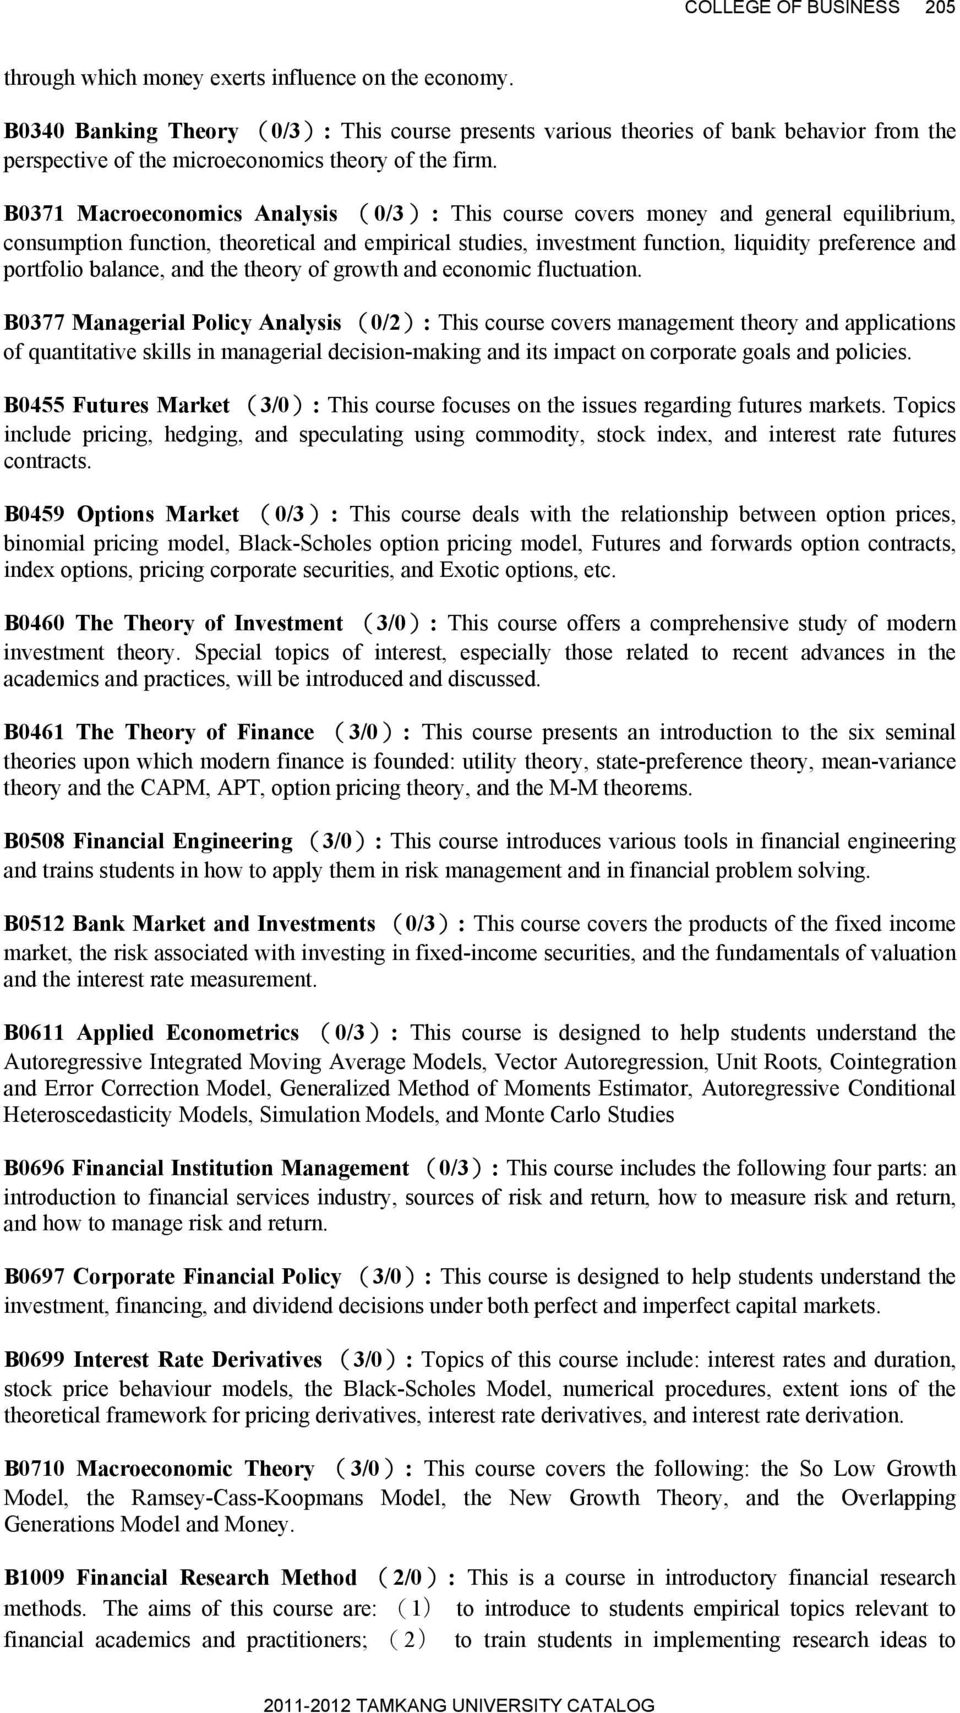 B0371 Macroeconomics Analysis (0/3): This course covers money and general equilibrium, consumption function, theoretical and empirical studies, investment function, liquidity preference and portfolio